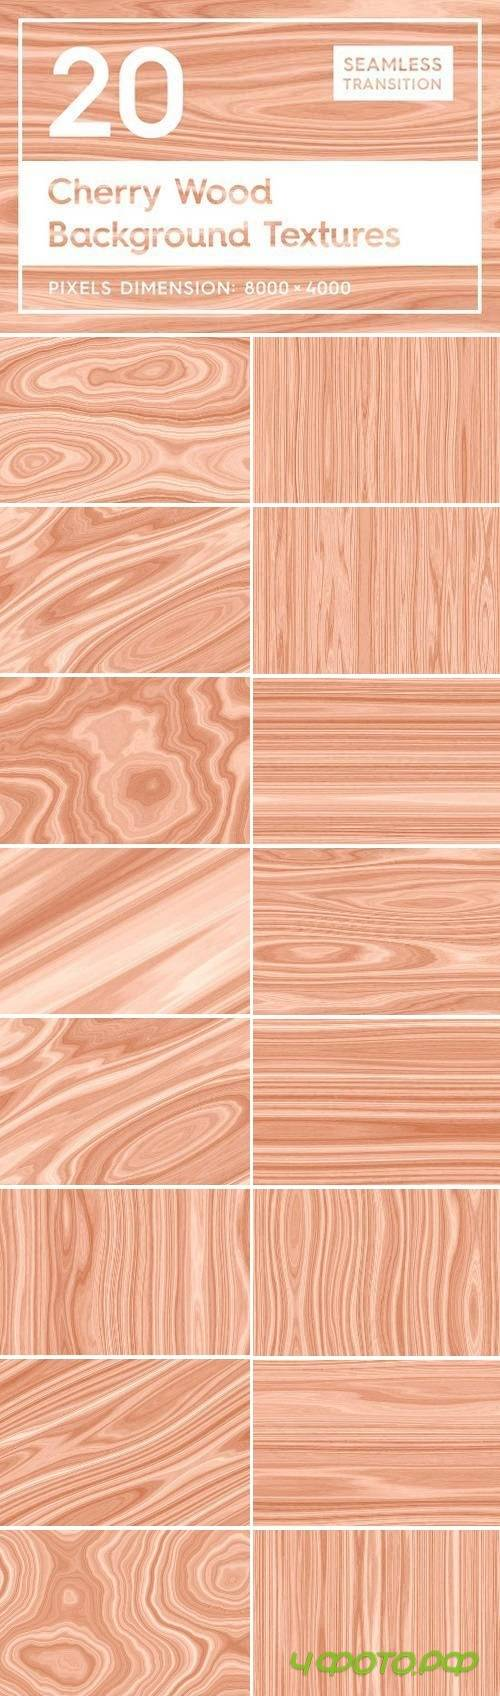 20 Cherry Wood Background Textures 2167059